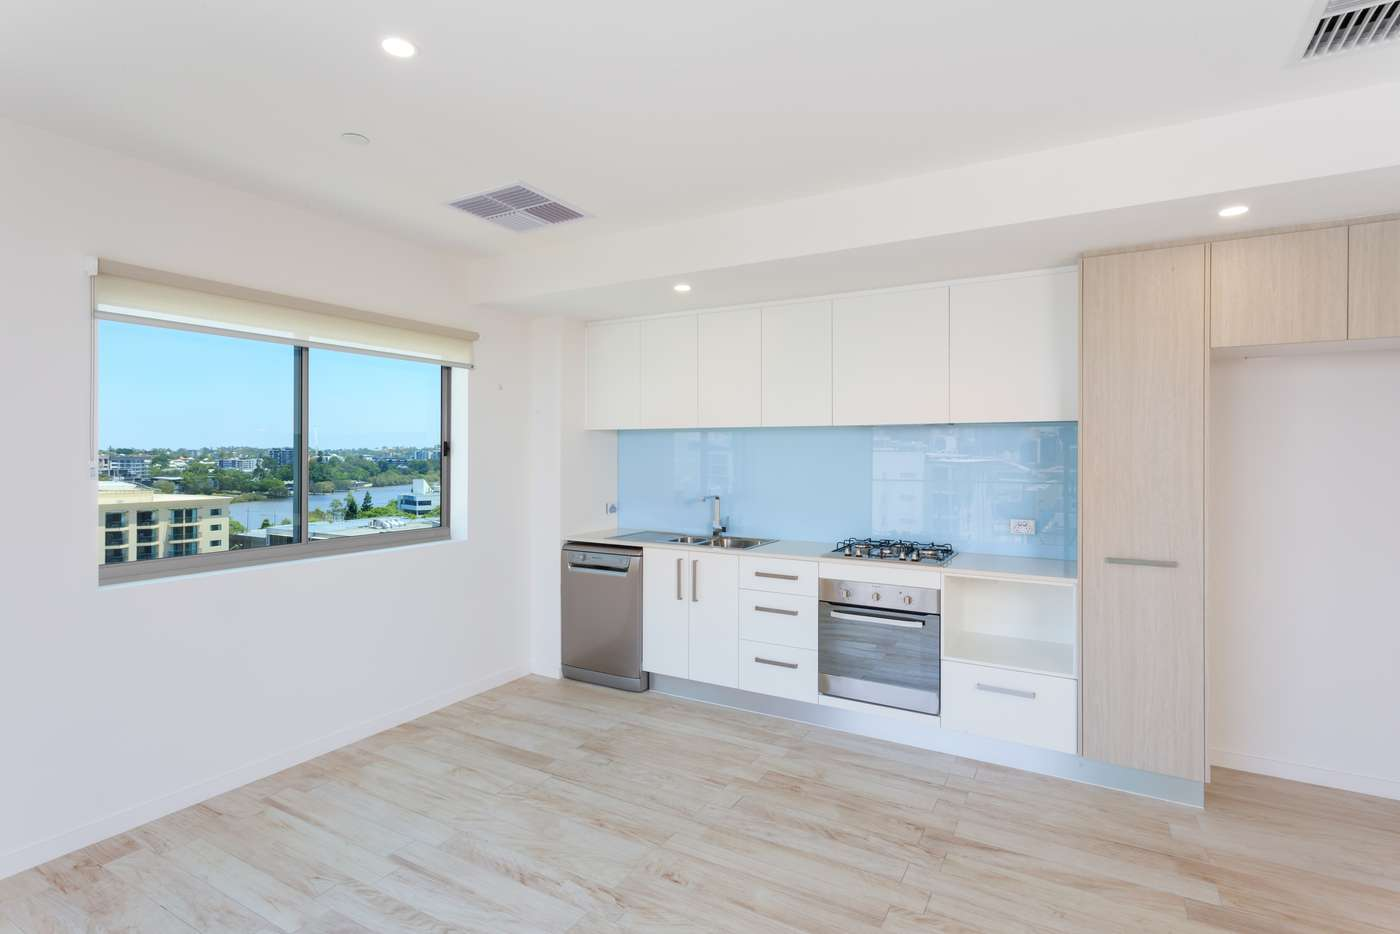 Sixth view of Homely apartment listing, 41/27 Manning, Milton QLD 4064